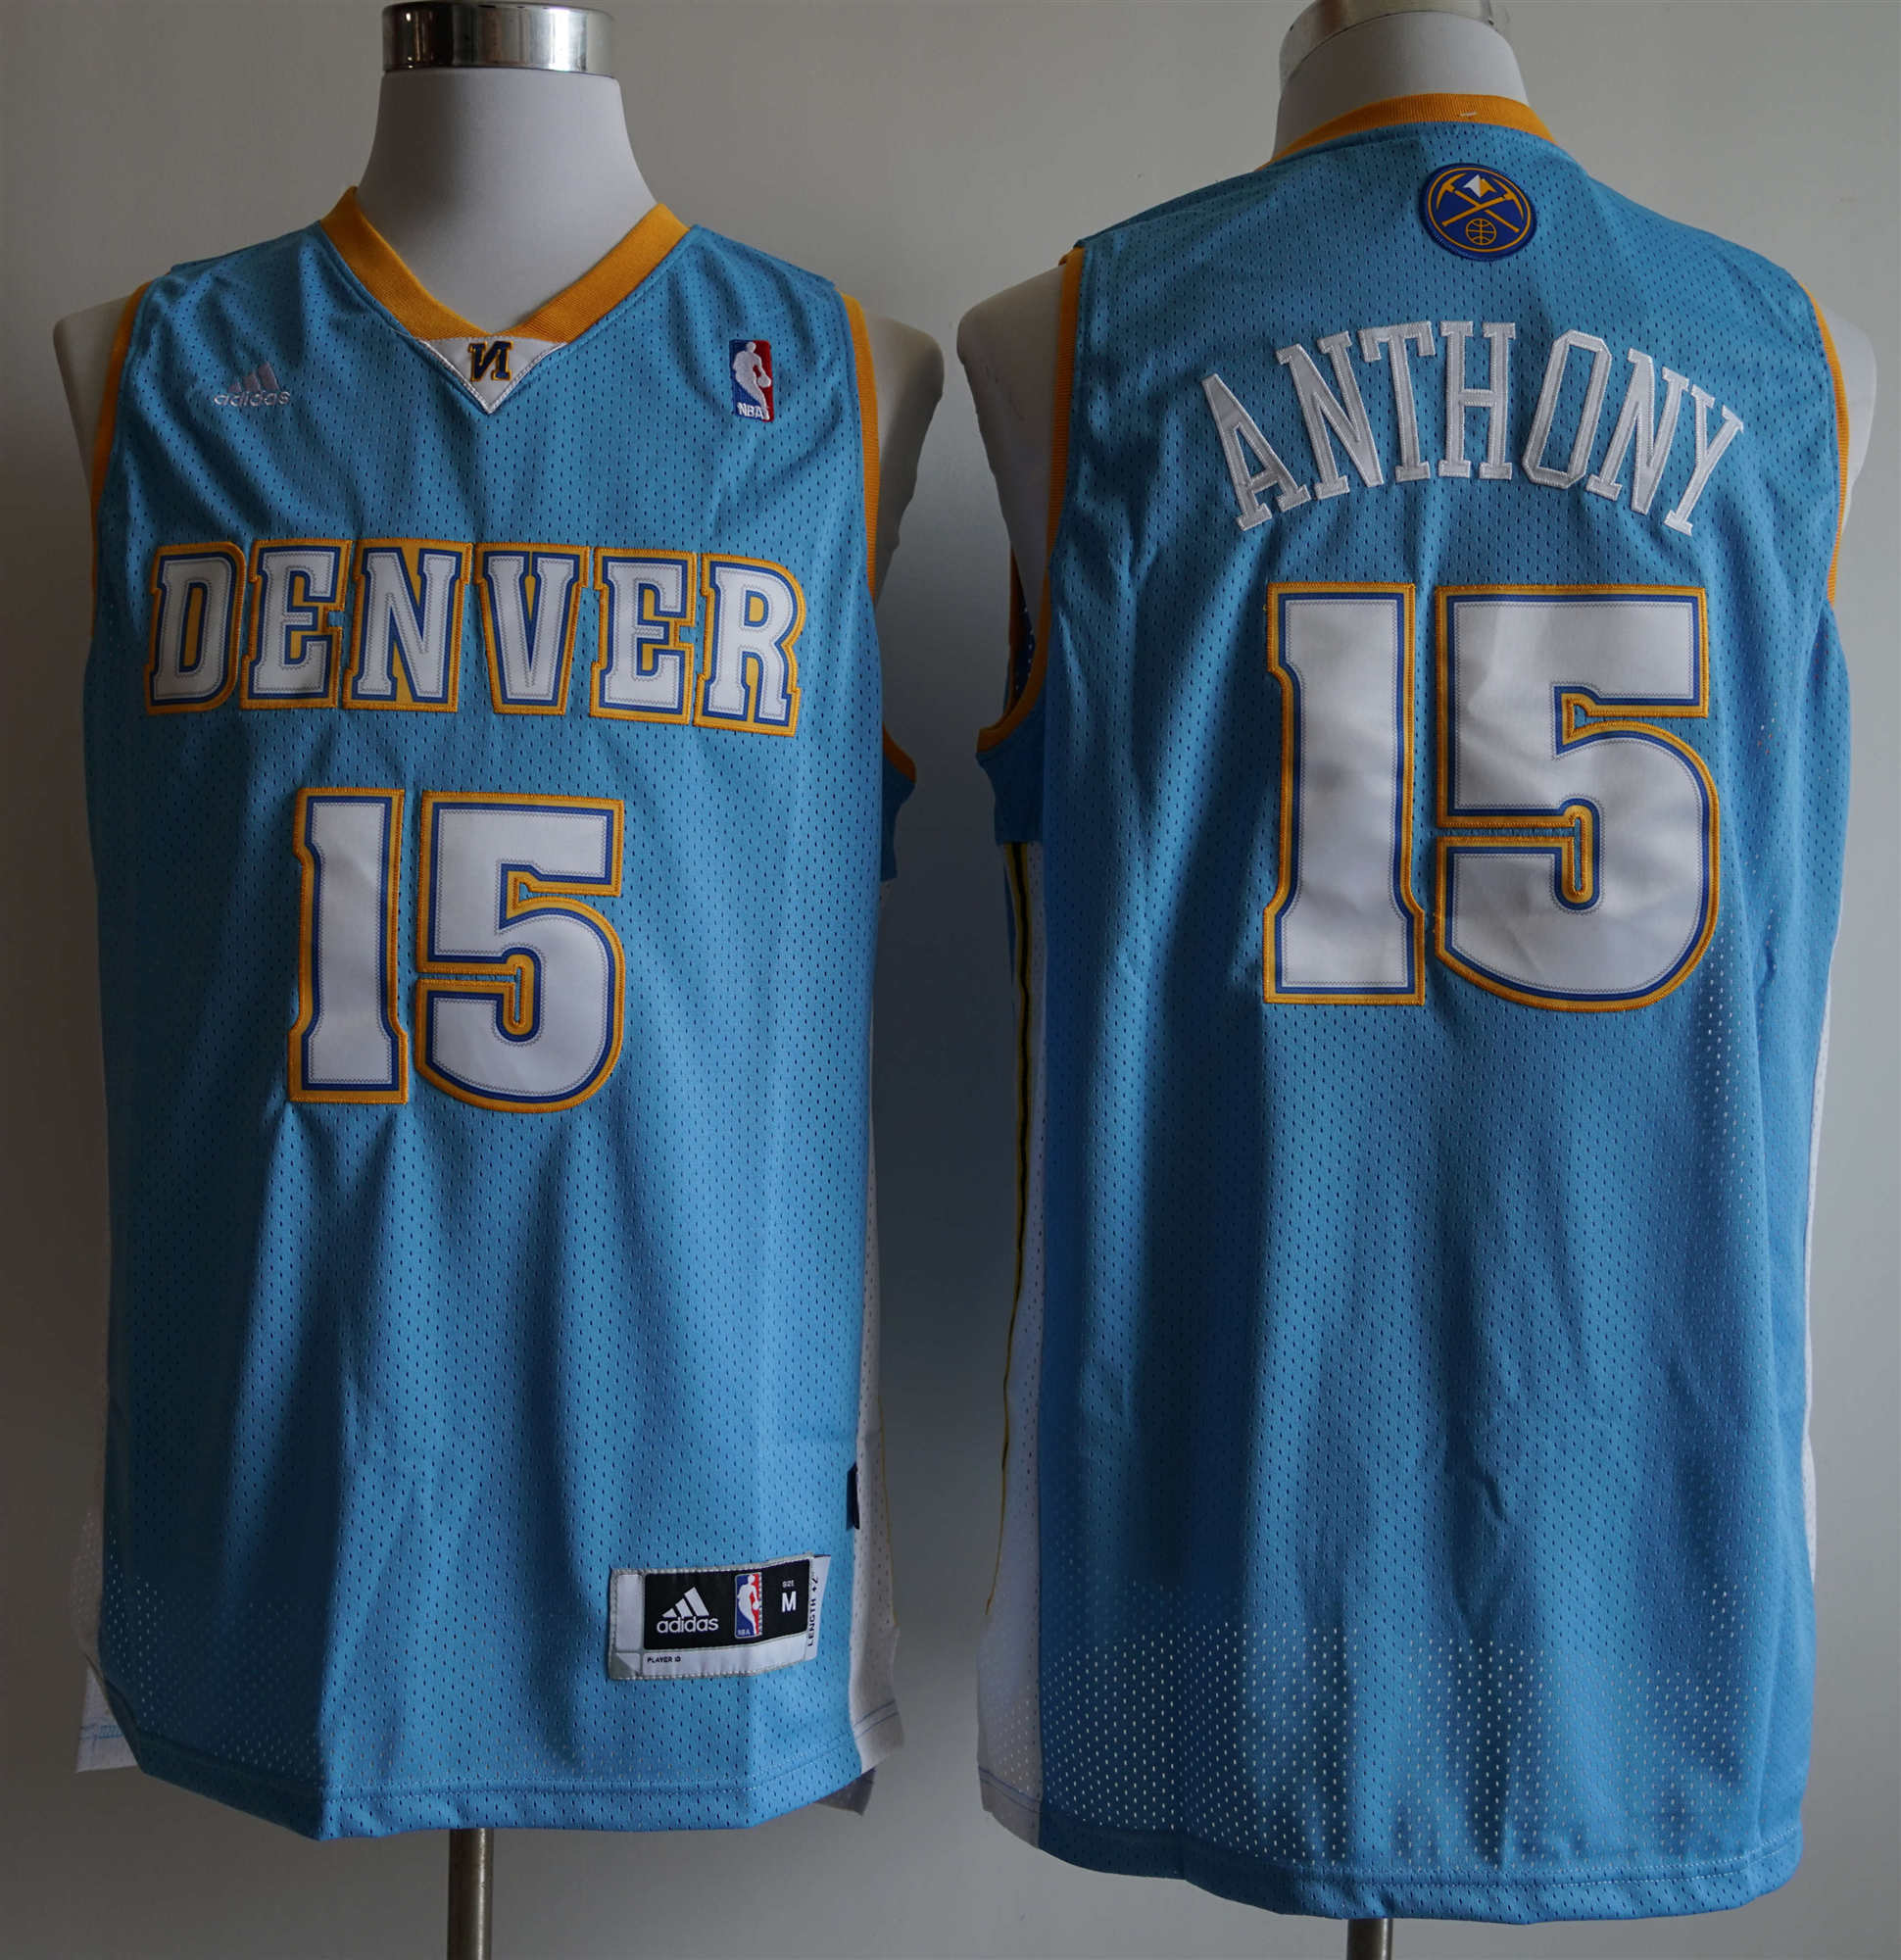 Nuggets 15 Carmelo Anthony Light Blue Adidas Jersey